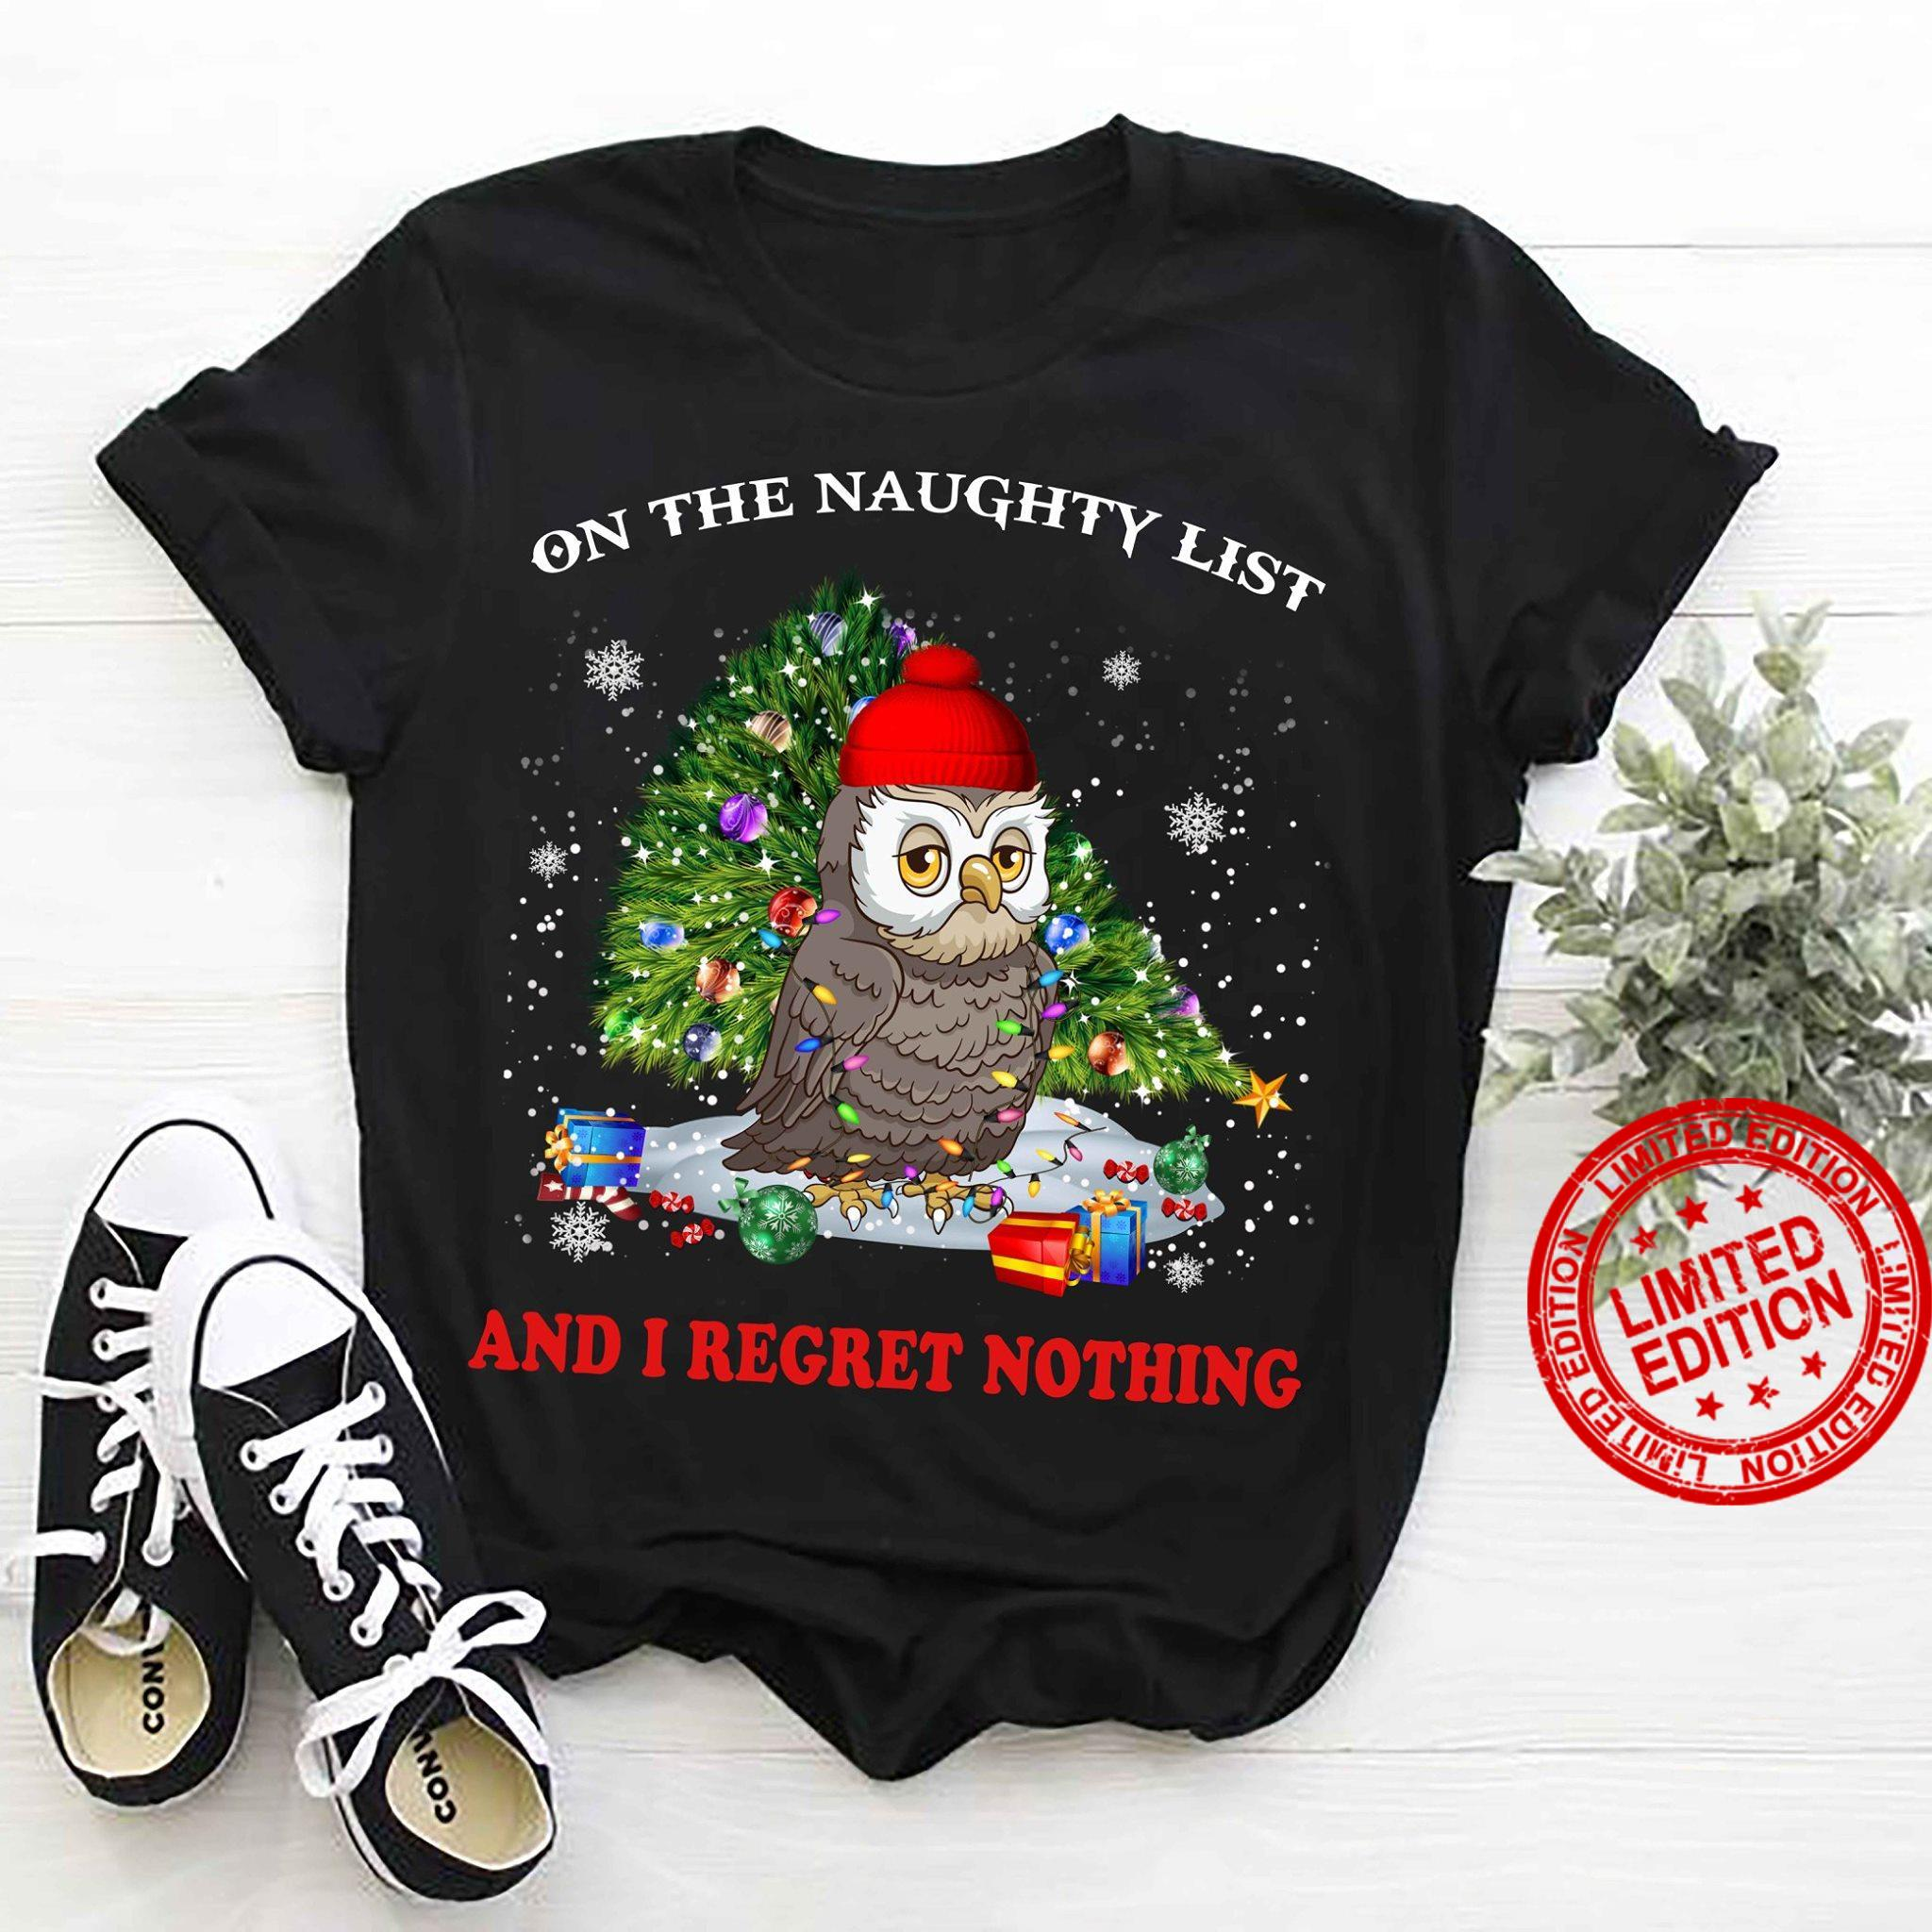 OnThe Naughty List And I Regret Nothing Shirt